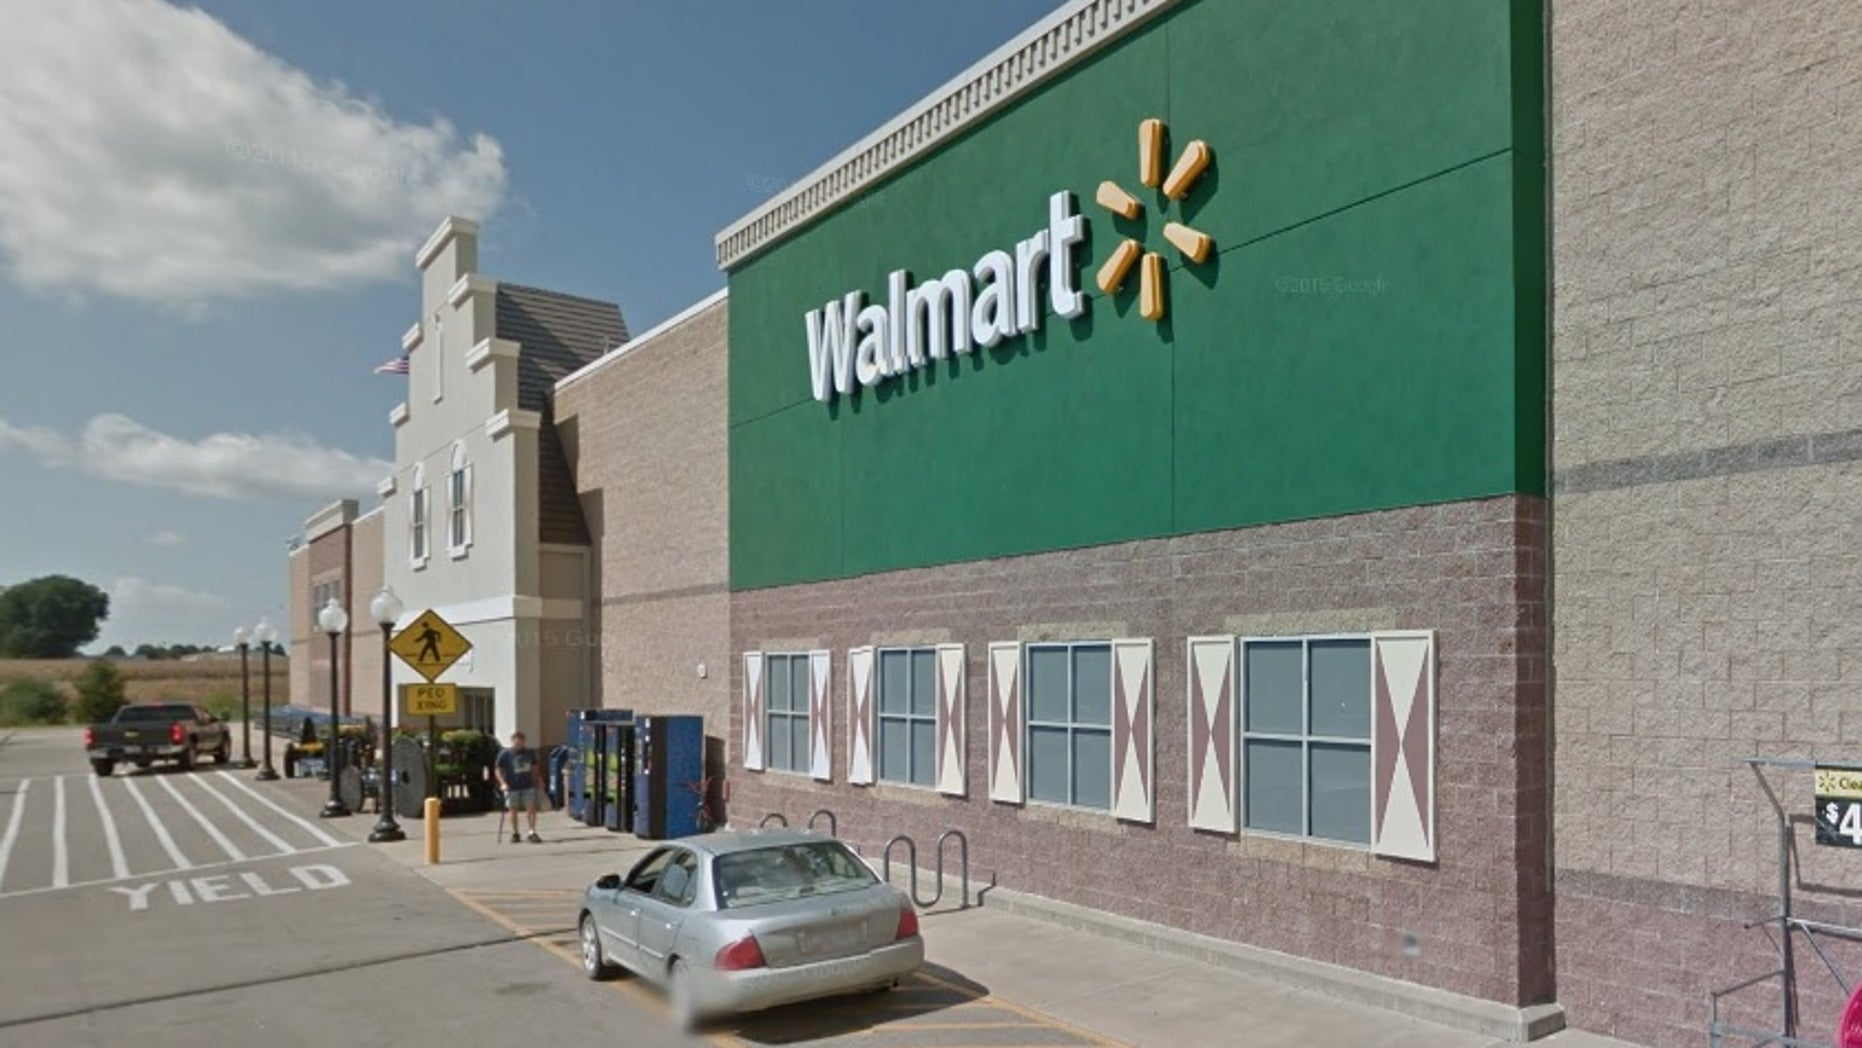 The Walmart in Pella, Iowa.